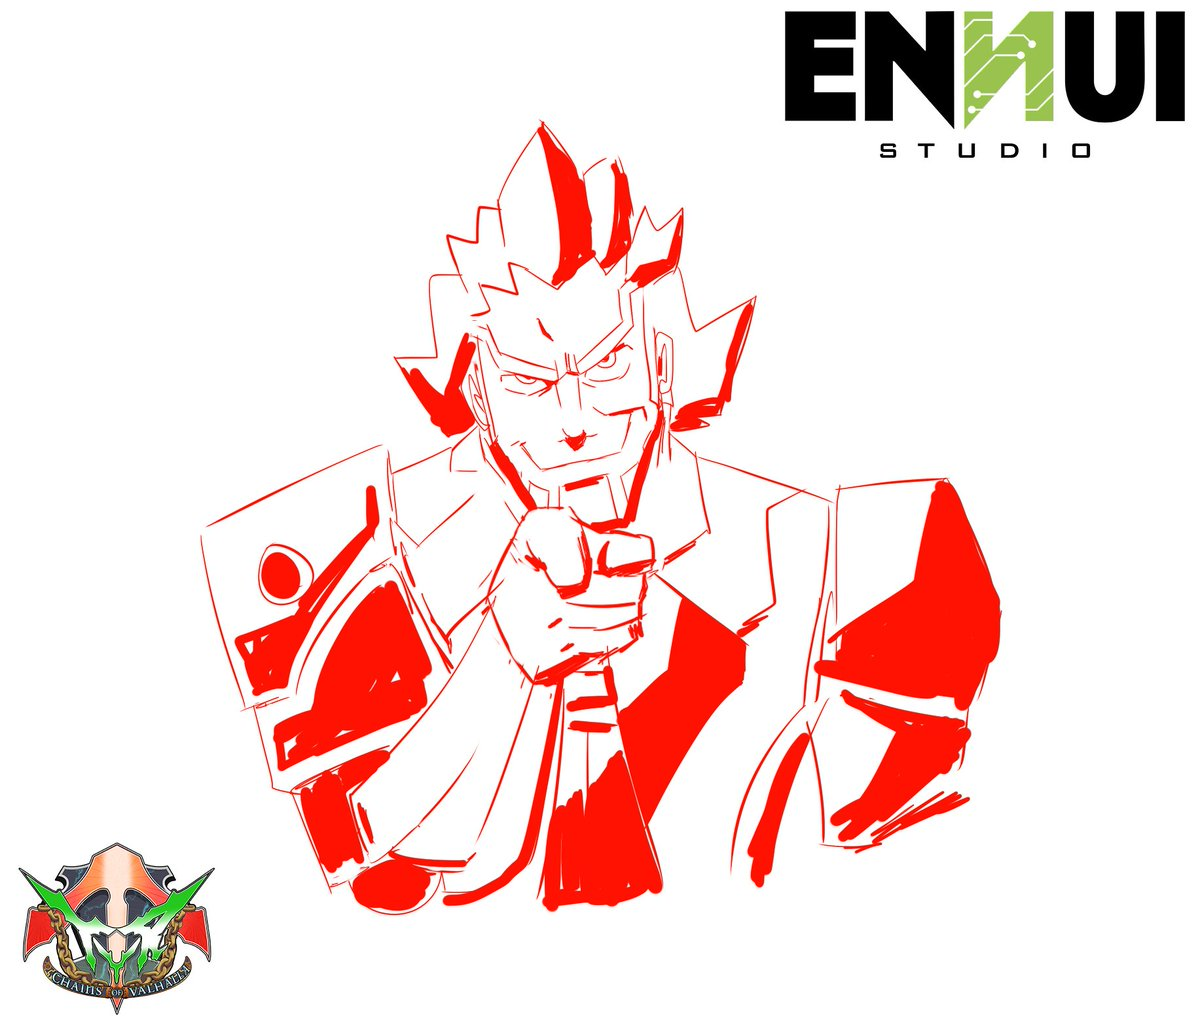 We&#39;re Looking for you #Tyr #TheGame #Ennui #Studio #wemakegames #gamedev #indiegame #indiedev<br>http://pic.twitter.com/0JinHM1IMV